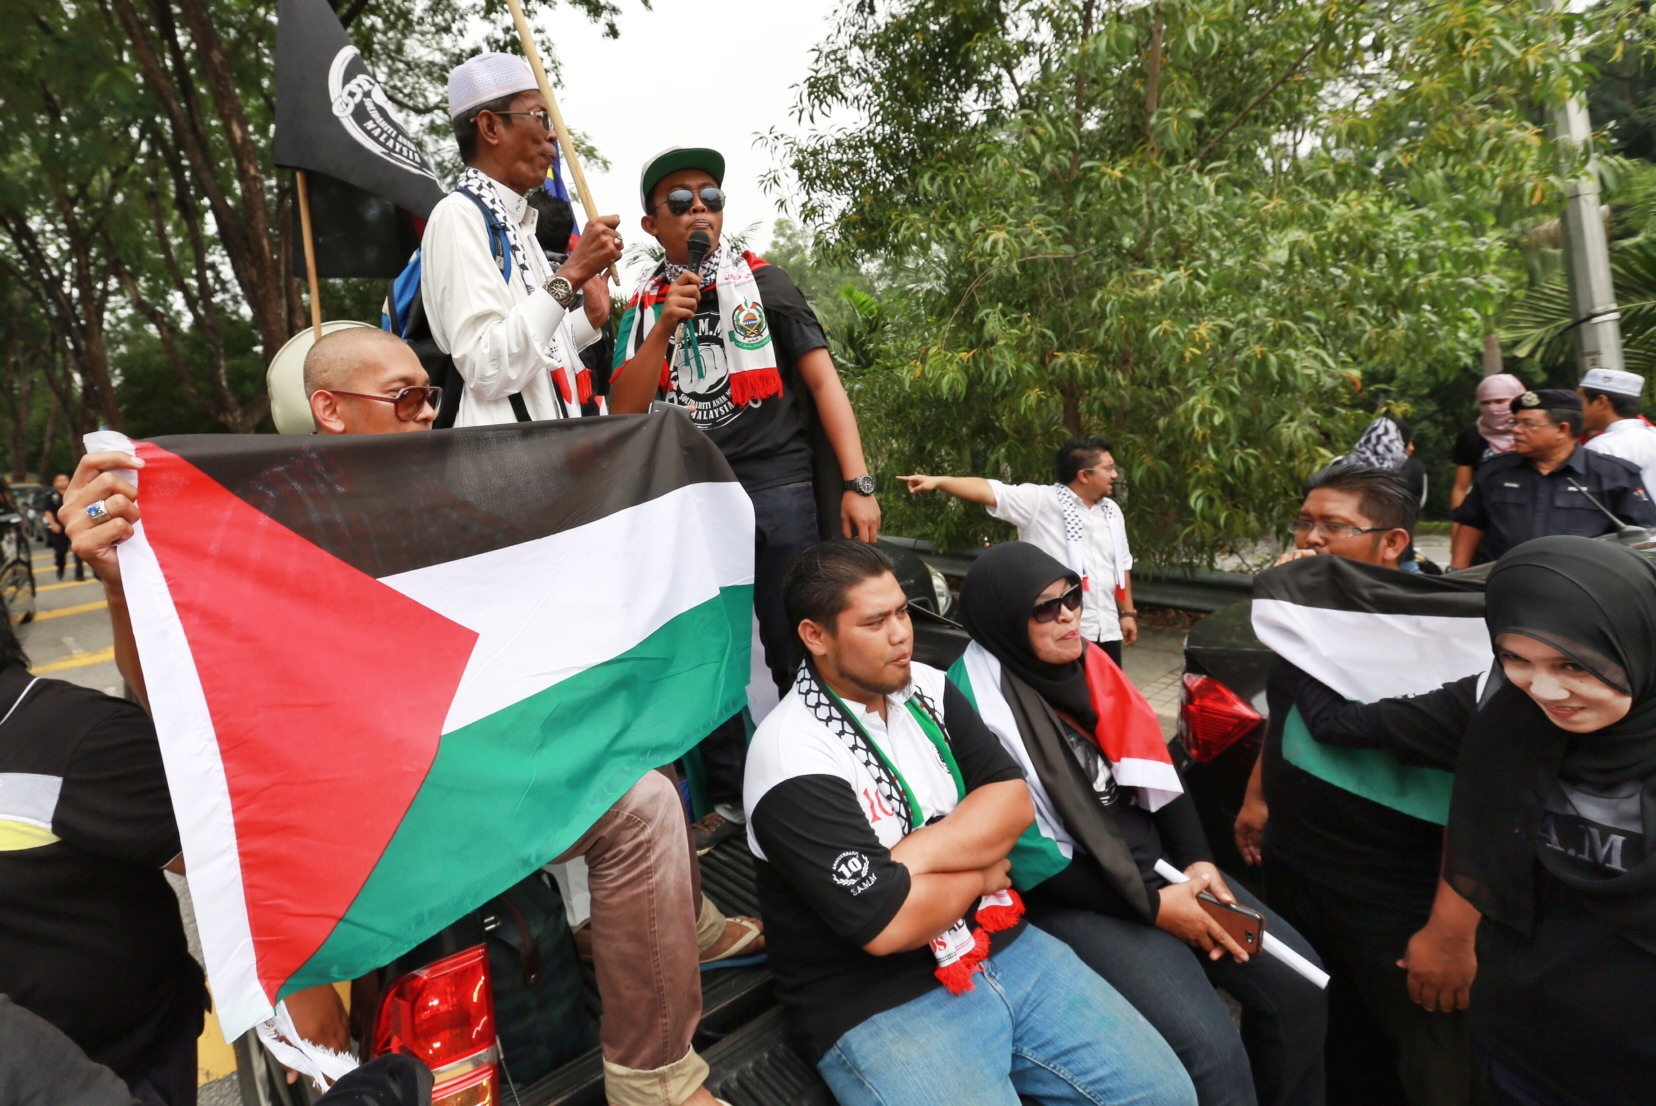 Protesters hold a flag of Palestine at a rally against trade with Israel outside the Ministry of International Trade and Industry (MITI) in Kuala Lumpur, on August 29, 2014. France said it will not 'automatically' recognise Palestine as a state if peace talks with Israel fails. — Picture by Saw Siow Feng